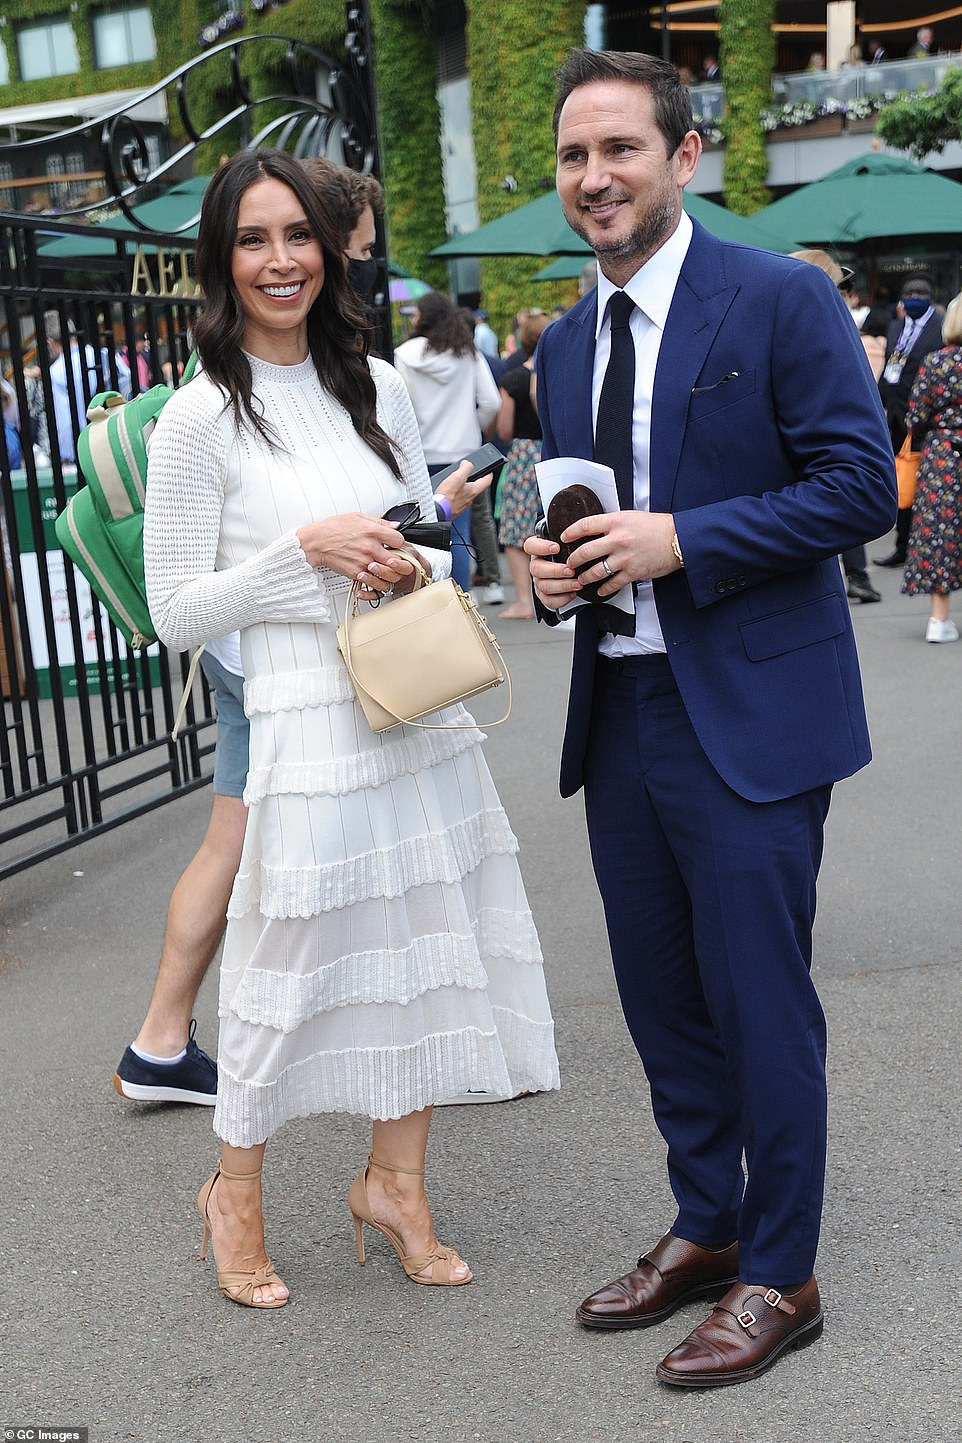 Fashionista: Christine teamed her white dress with nude heels and a leather bag to match